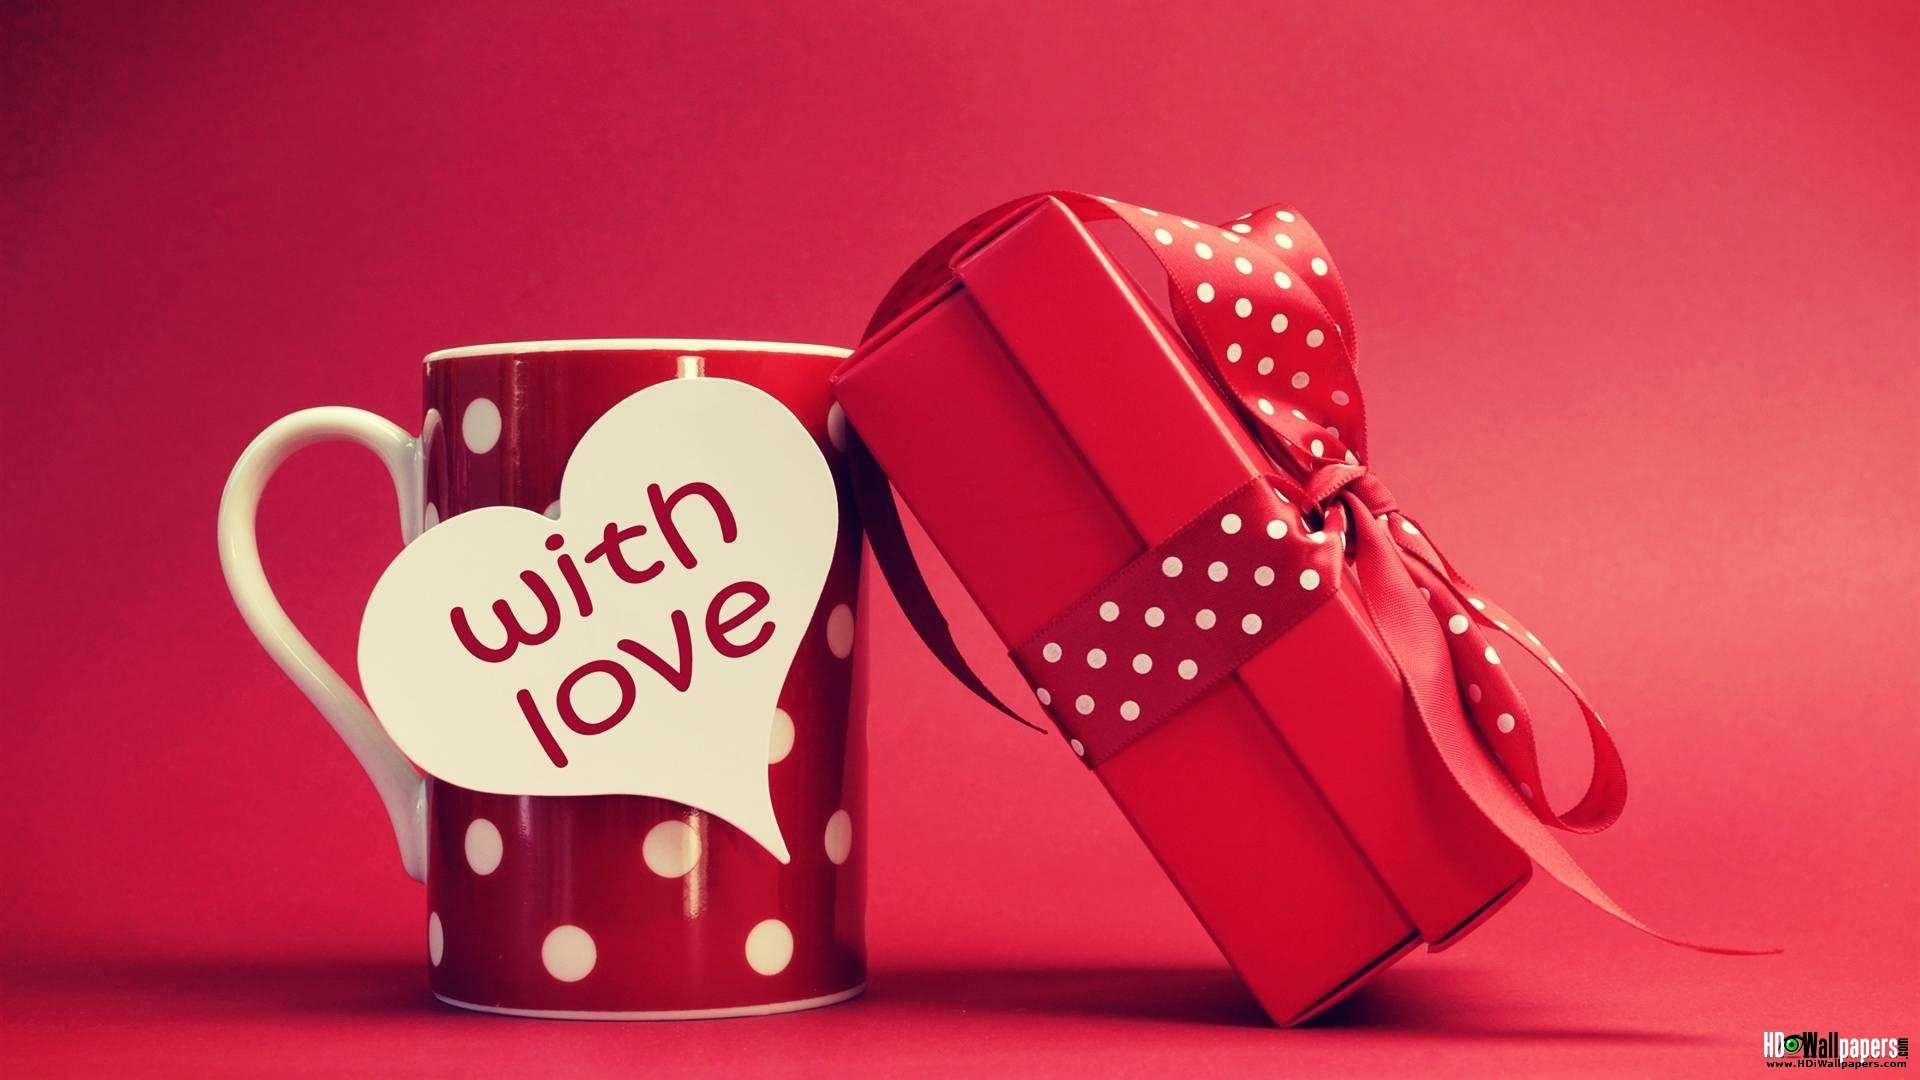 Sweet Love Wallpapers Free Download 1920x1080